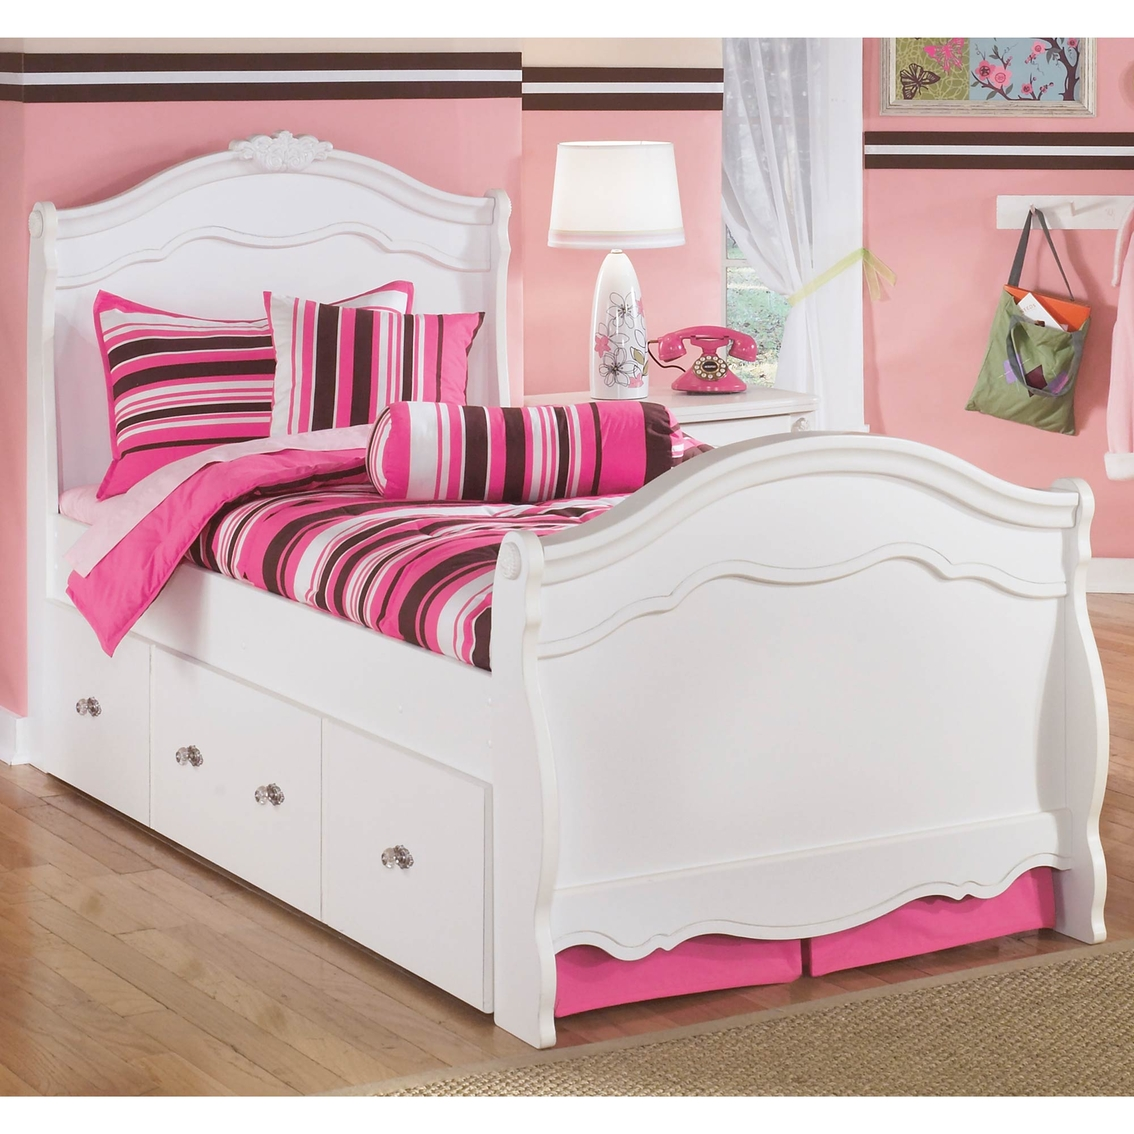 Signature Design By Ashley Exquisite Trundle Bed Beds Home Appliances Shop The Exchange